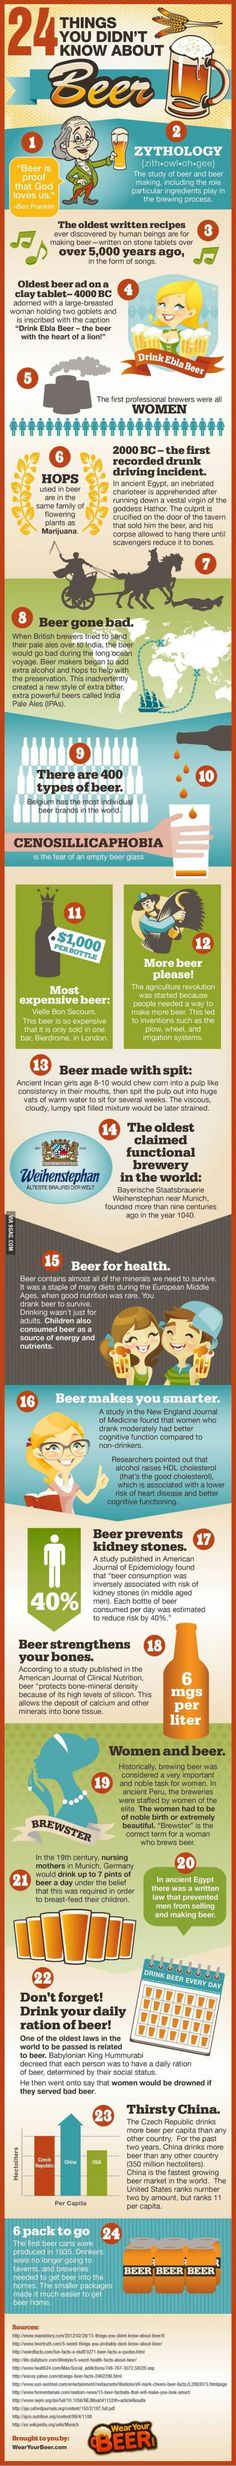 24 things you didn't know about beer--I knew there was a reason I love it so much ;)